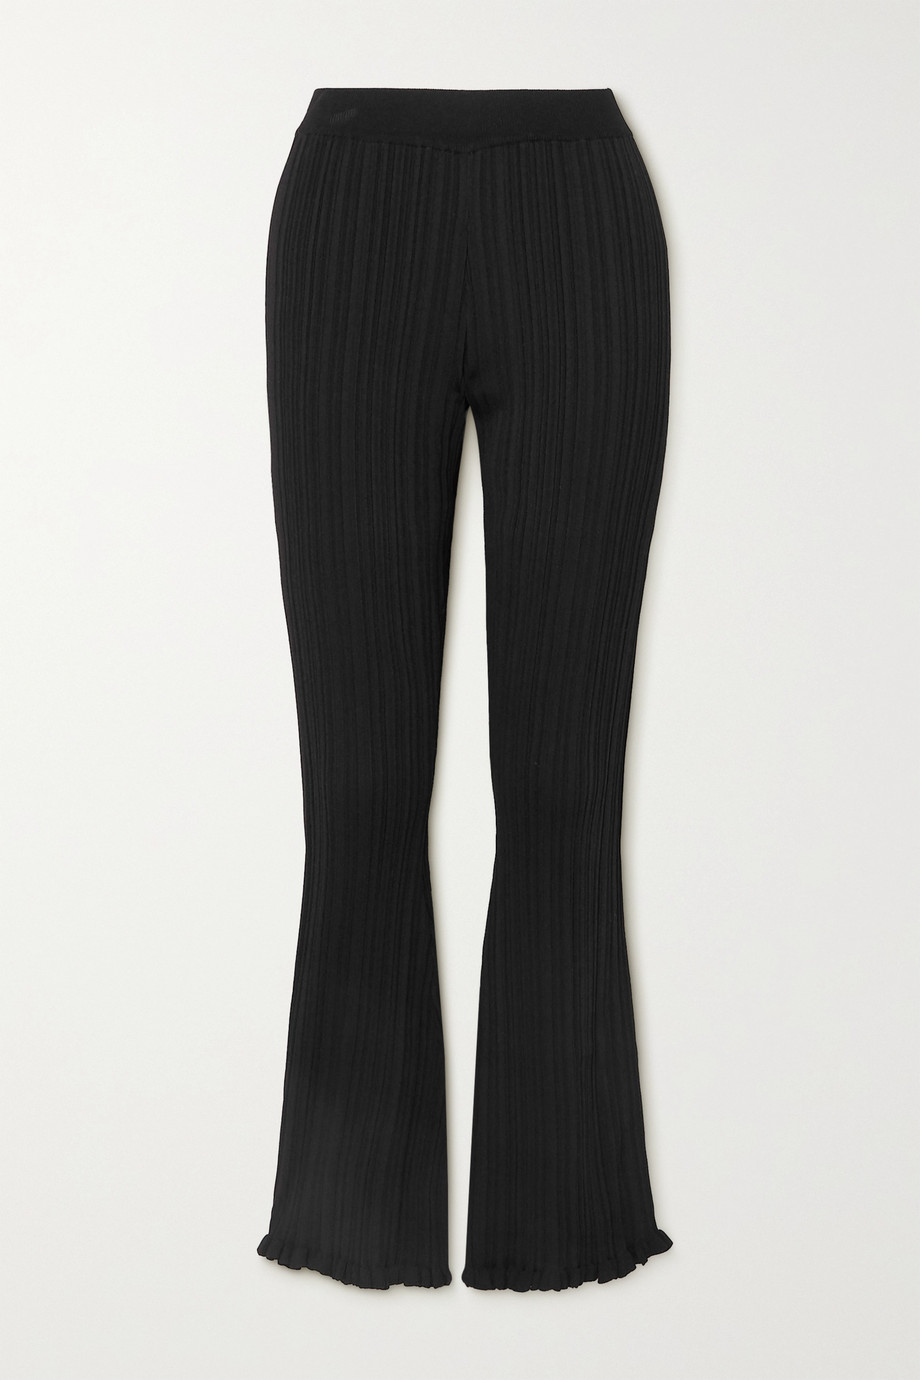 HOLZWEILER Dahlia ruffled ribbed-knit flared pants